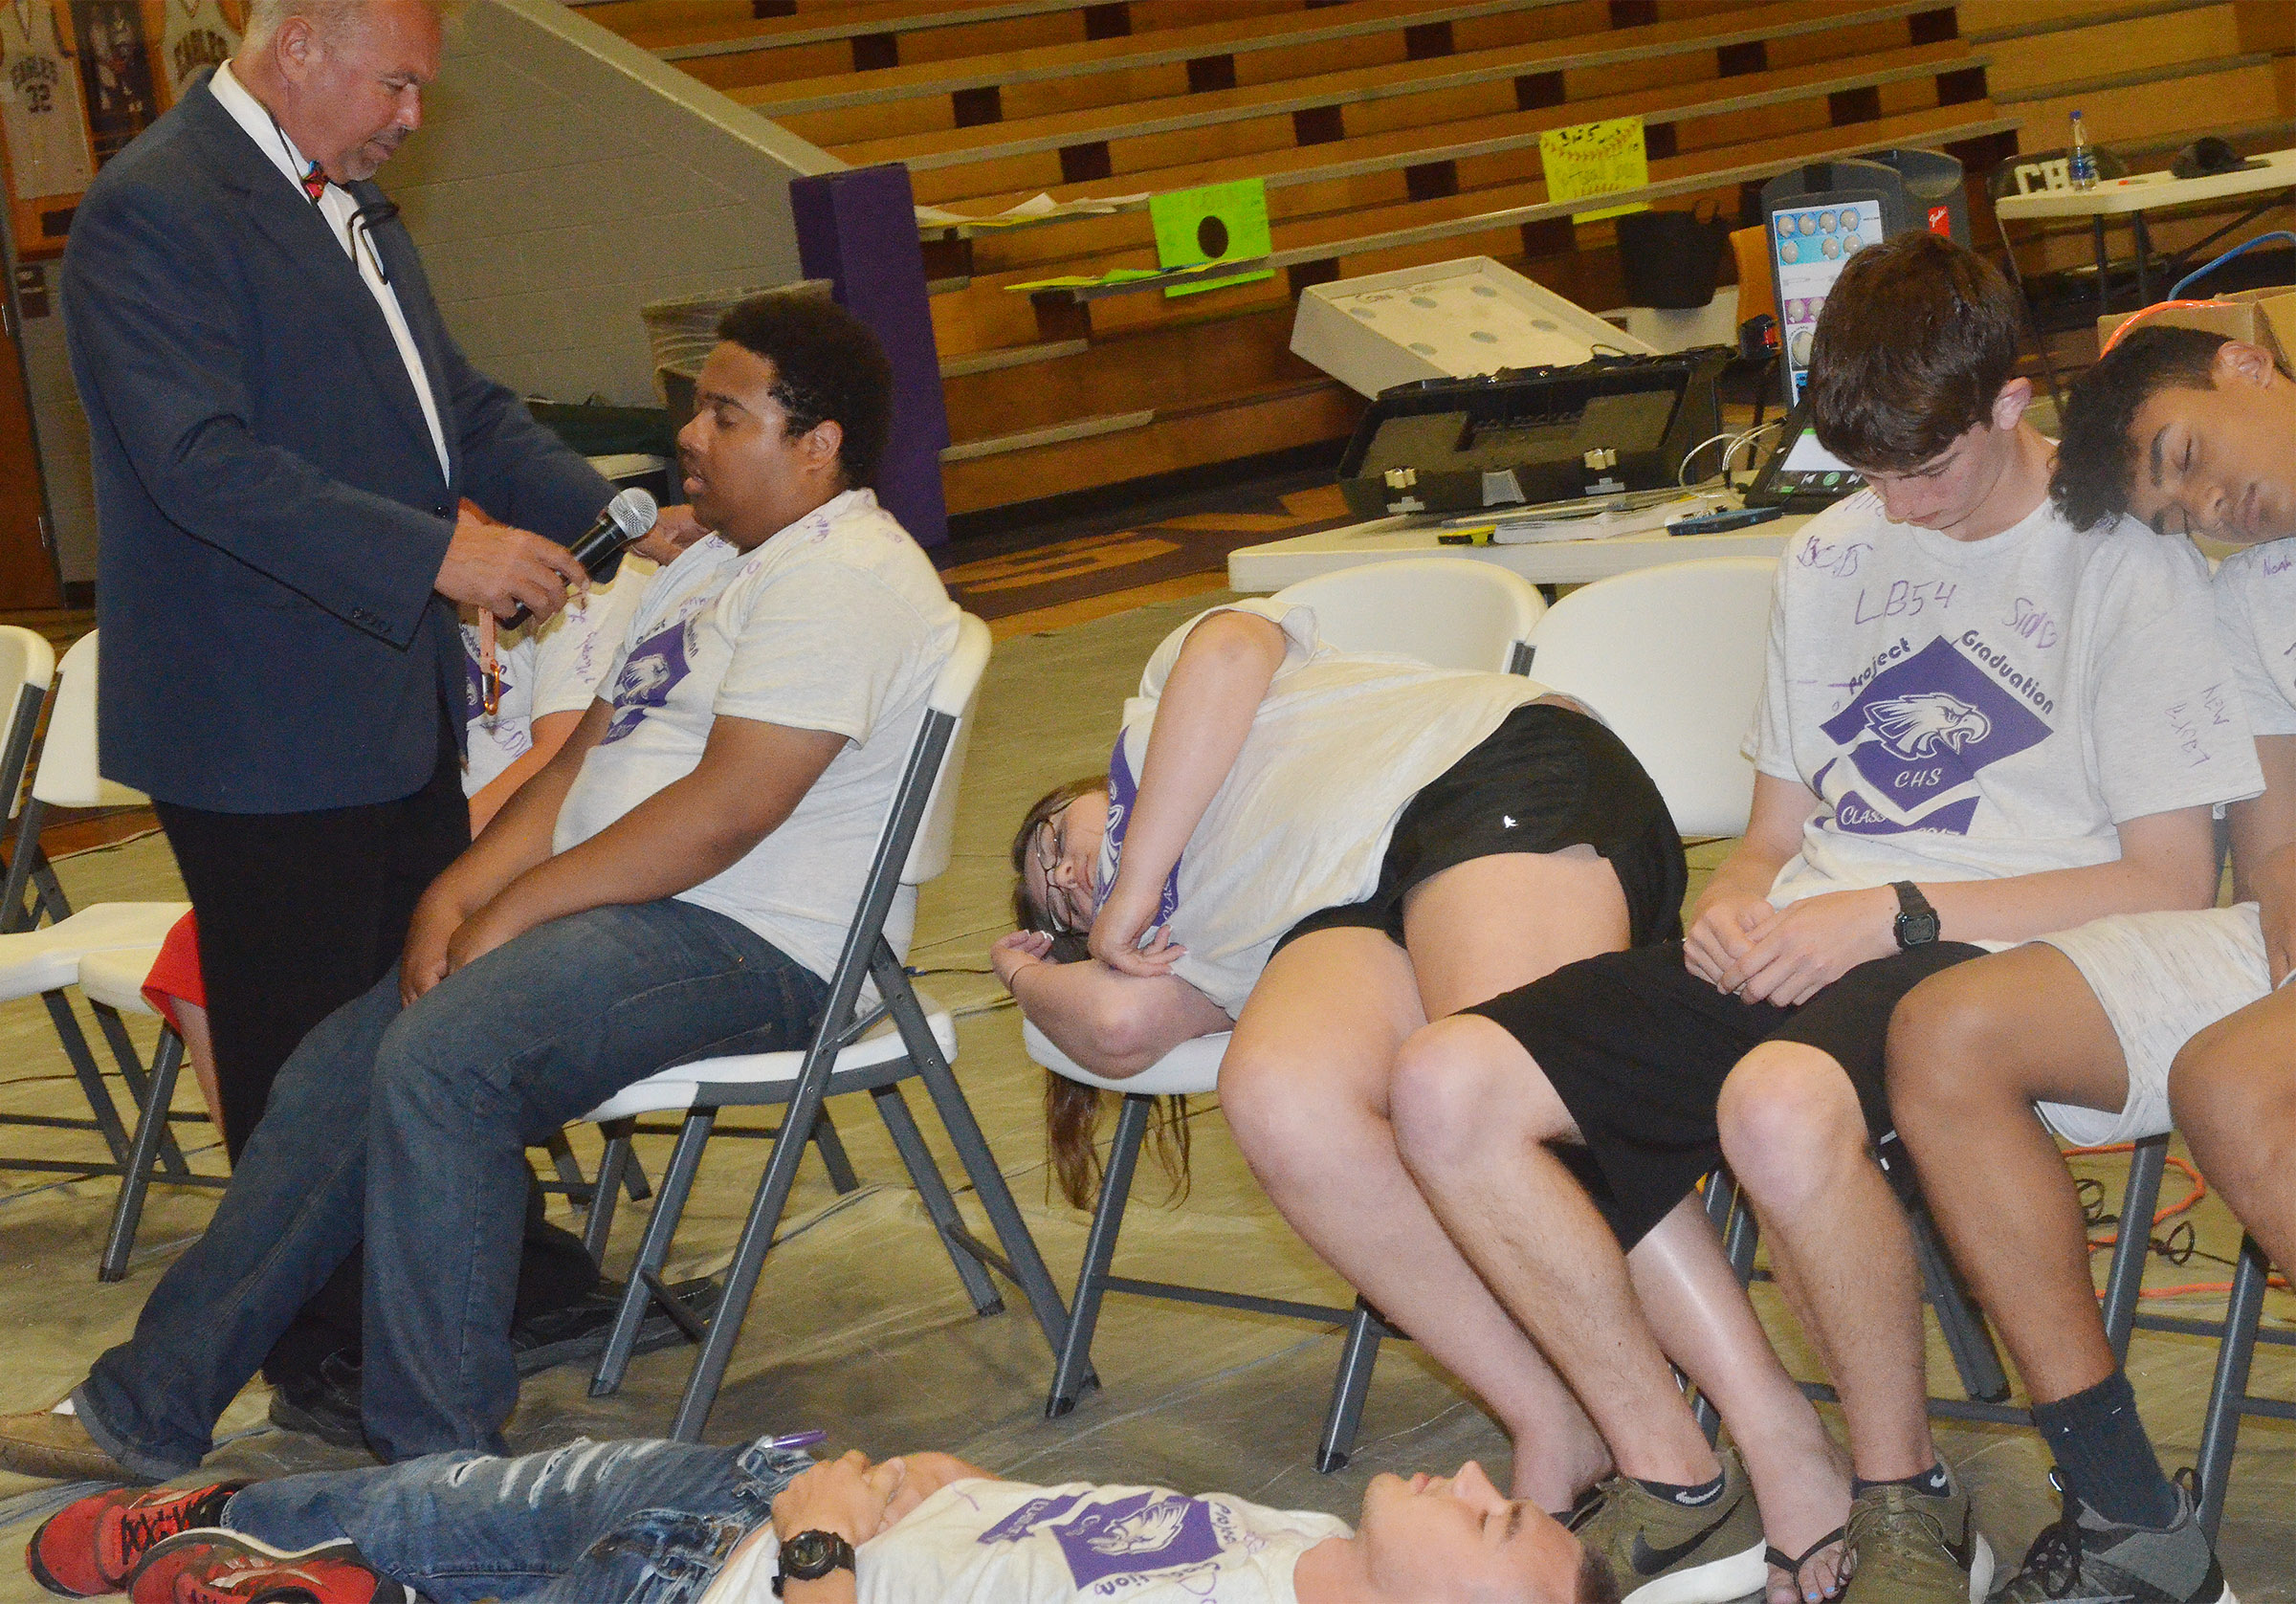 CHS senior Ricky Smith-Cecil talks to his classmates while under hypnosis.